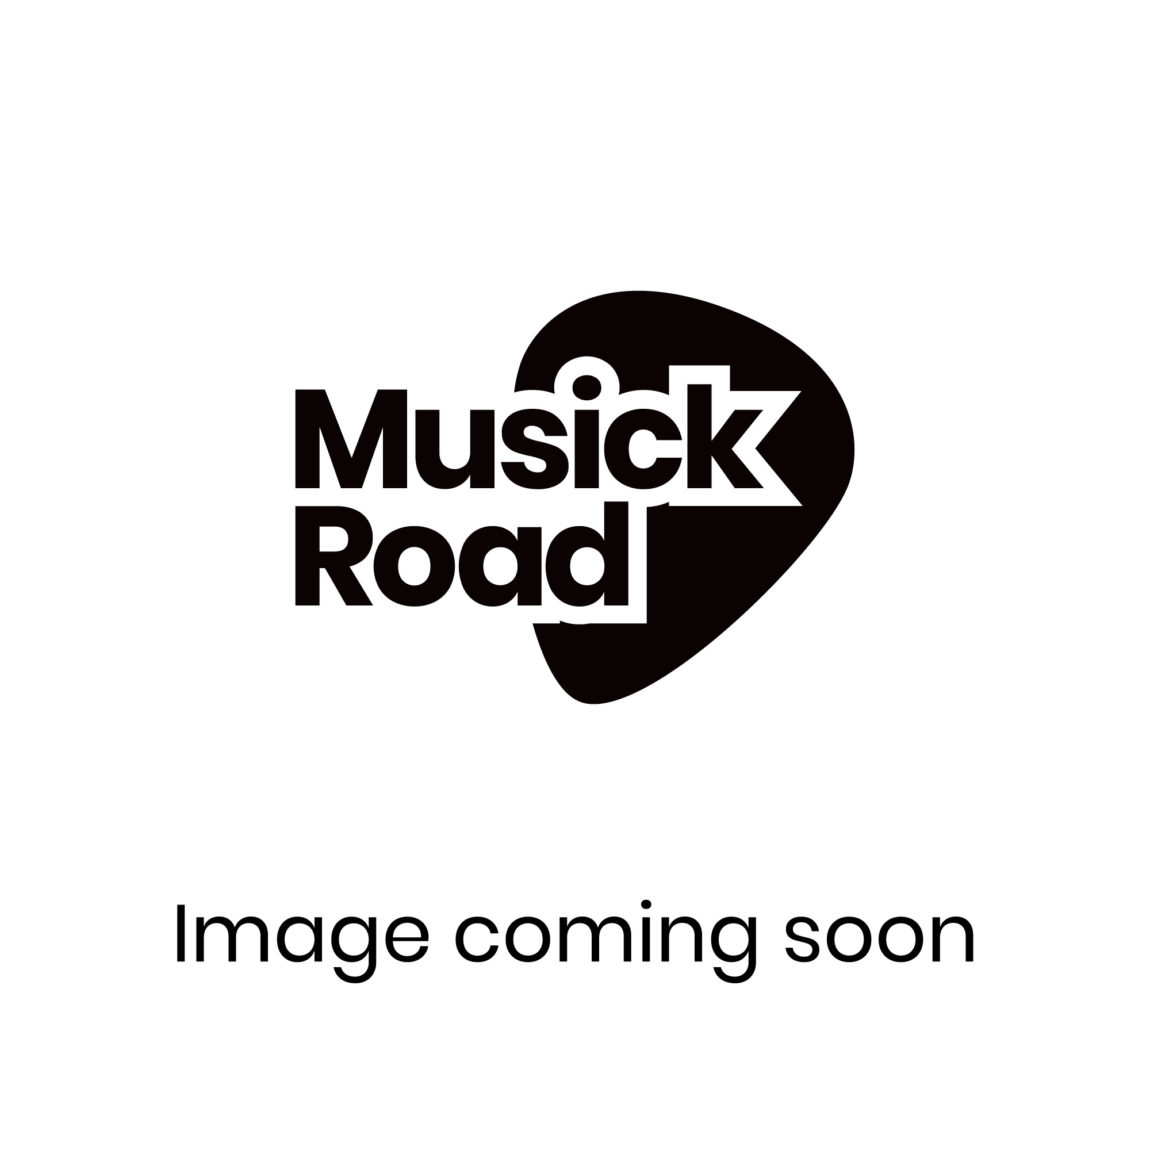 Musick Road Image Coming Soon